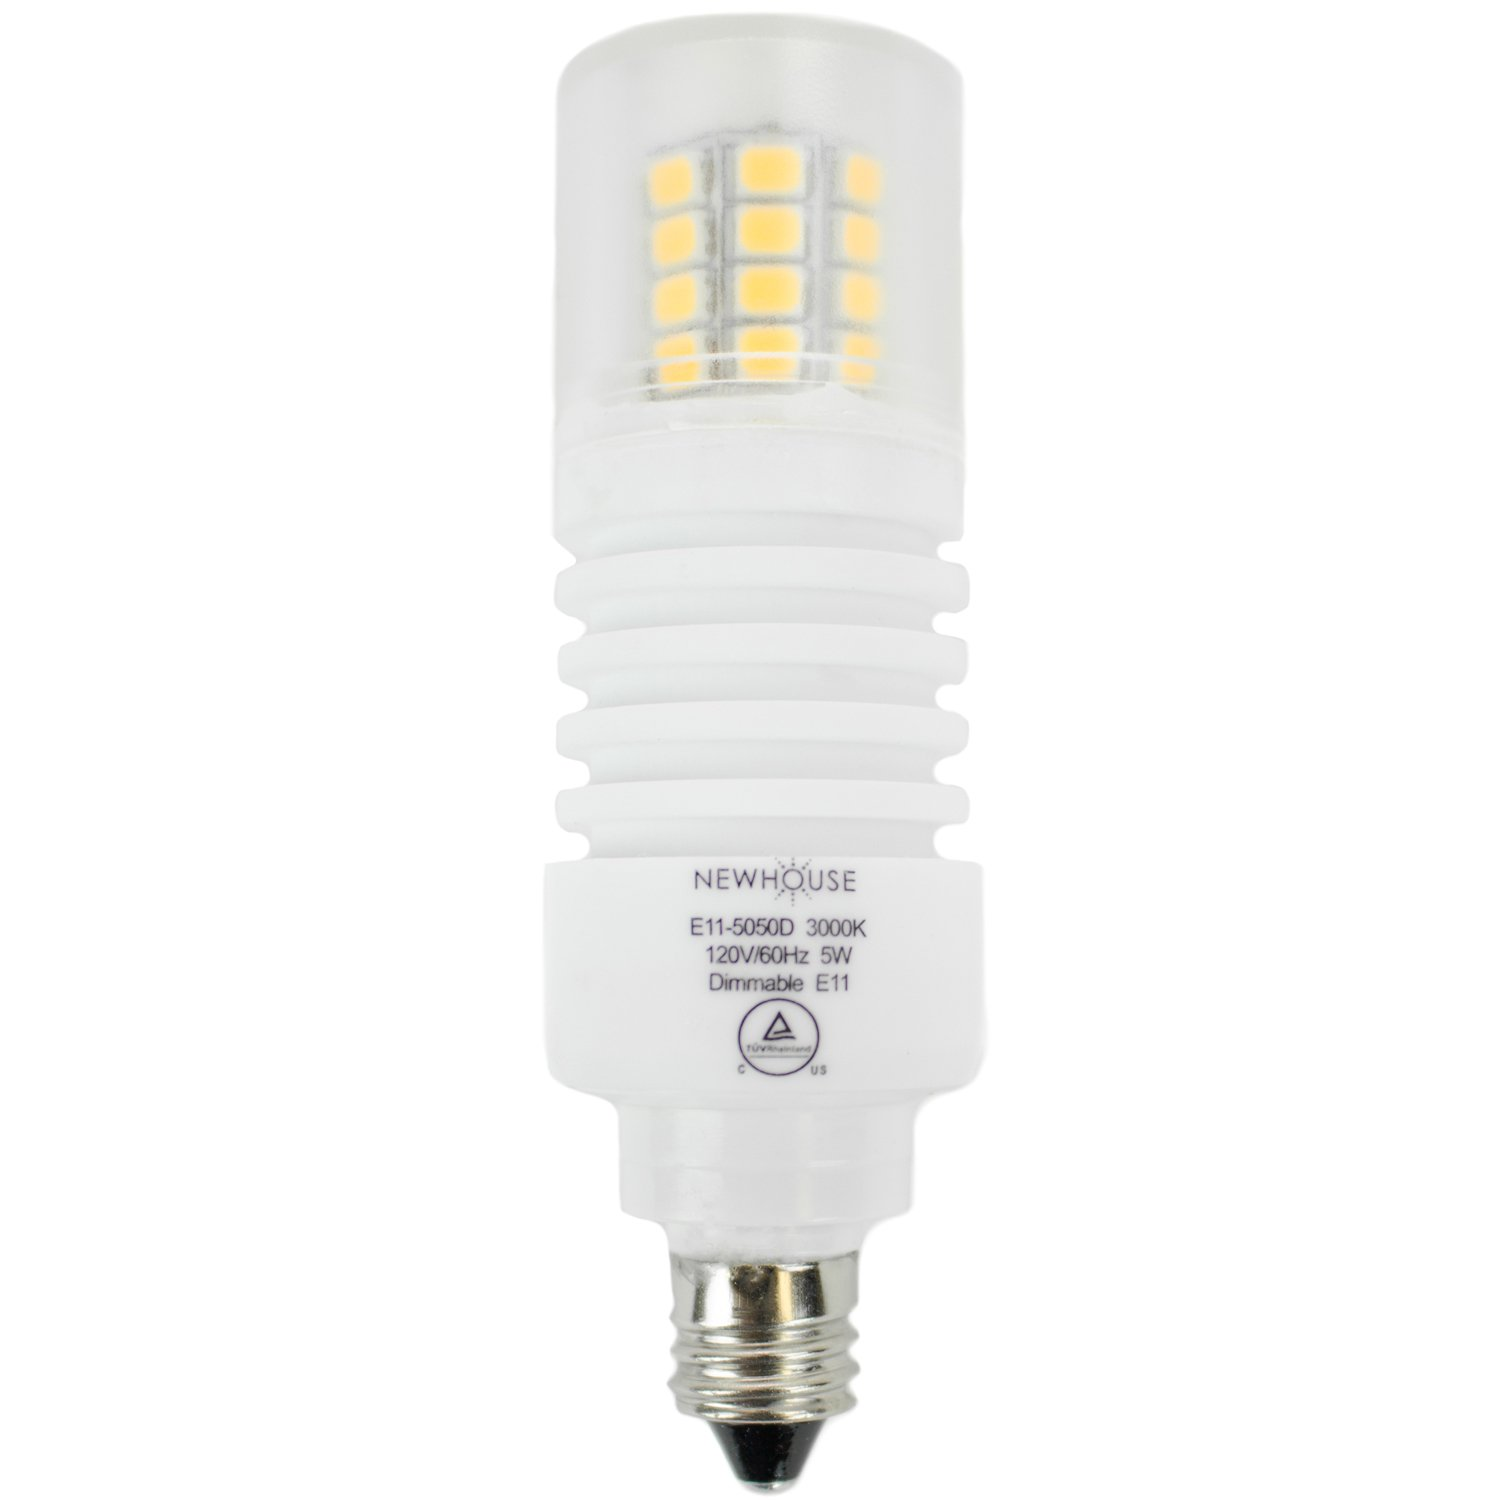 newhouse lighting e11 led bulb halogen replacement lights 5w 50w. Black Bedroom Furniture Sets. Home Design Ideas